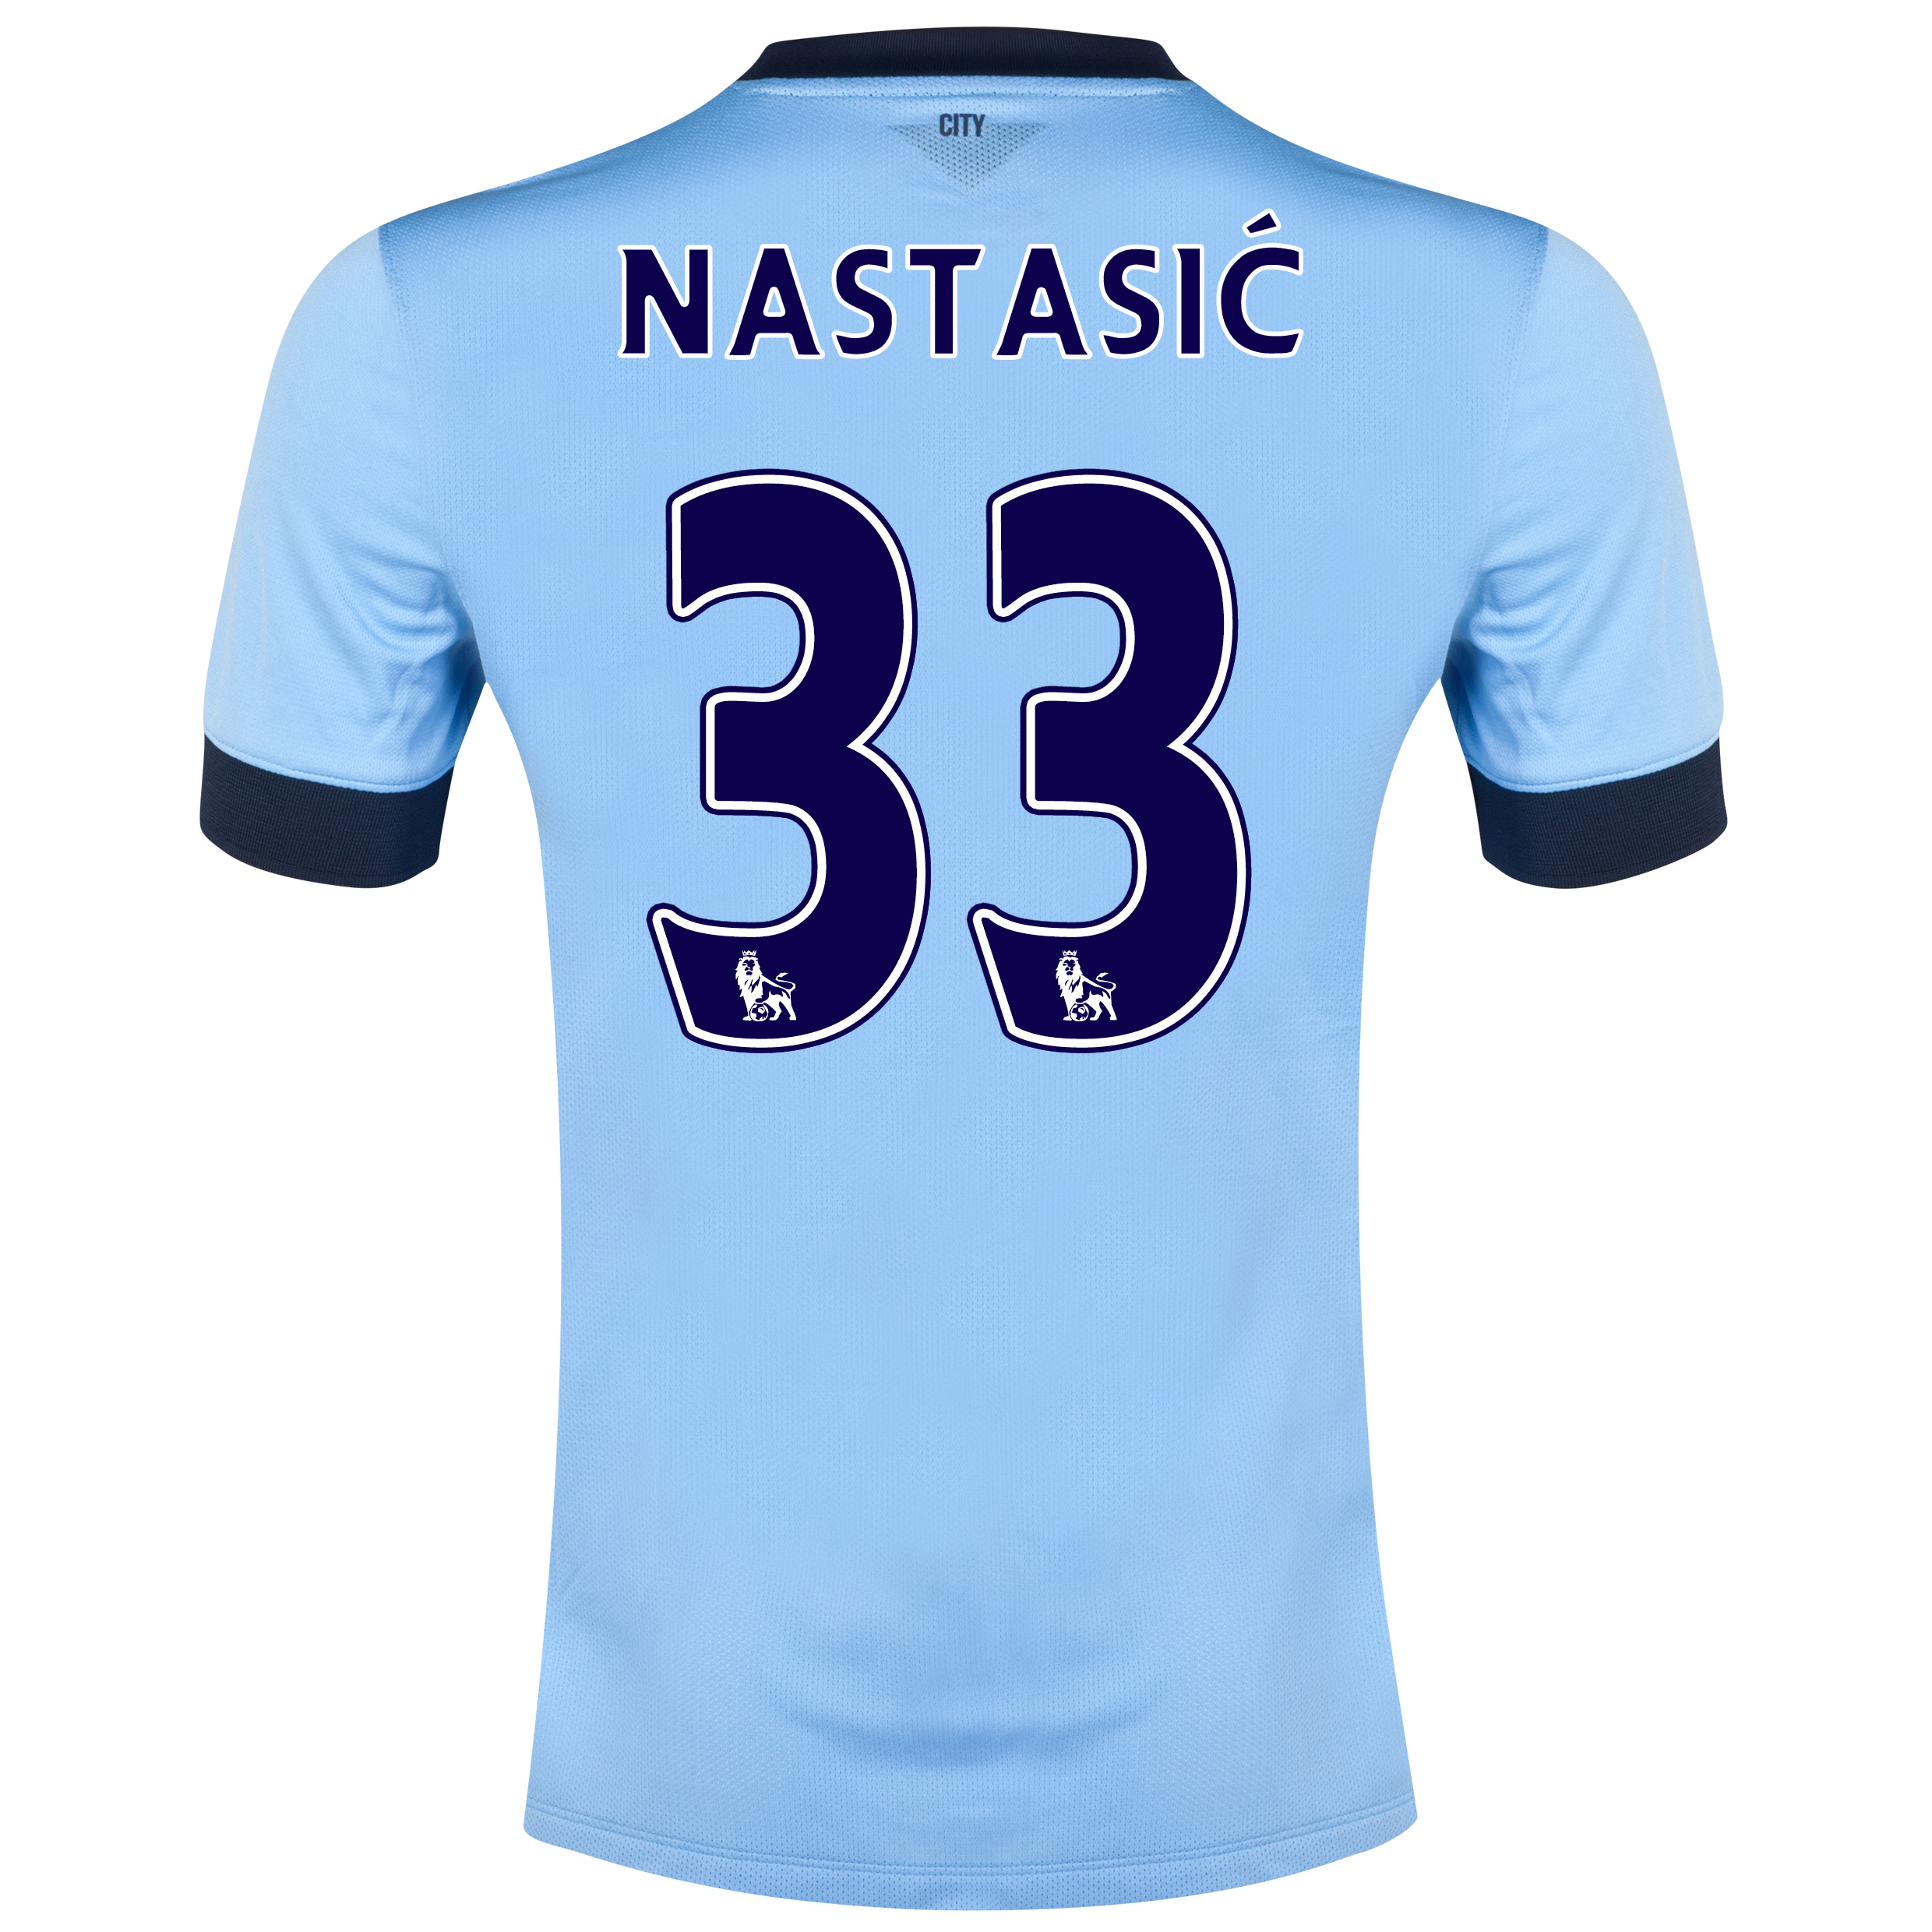 Manchester City Home Shirt 2014/15 Sky Blue with Nastasic 33 printing